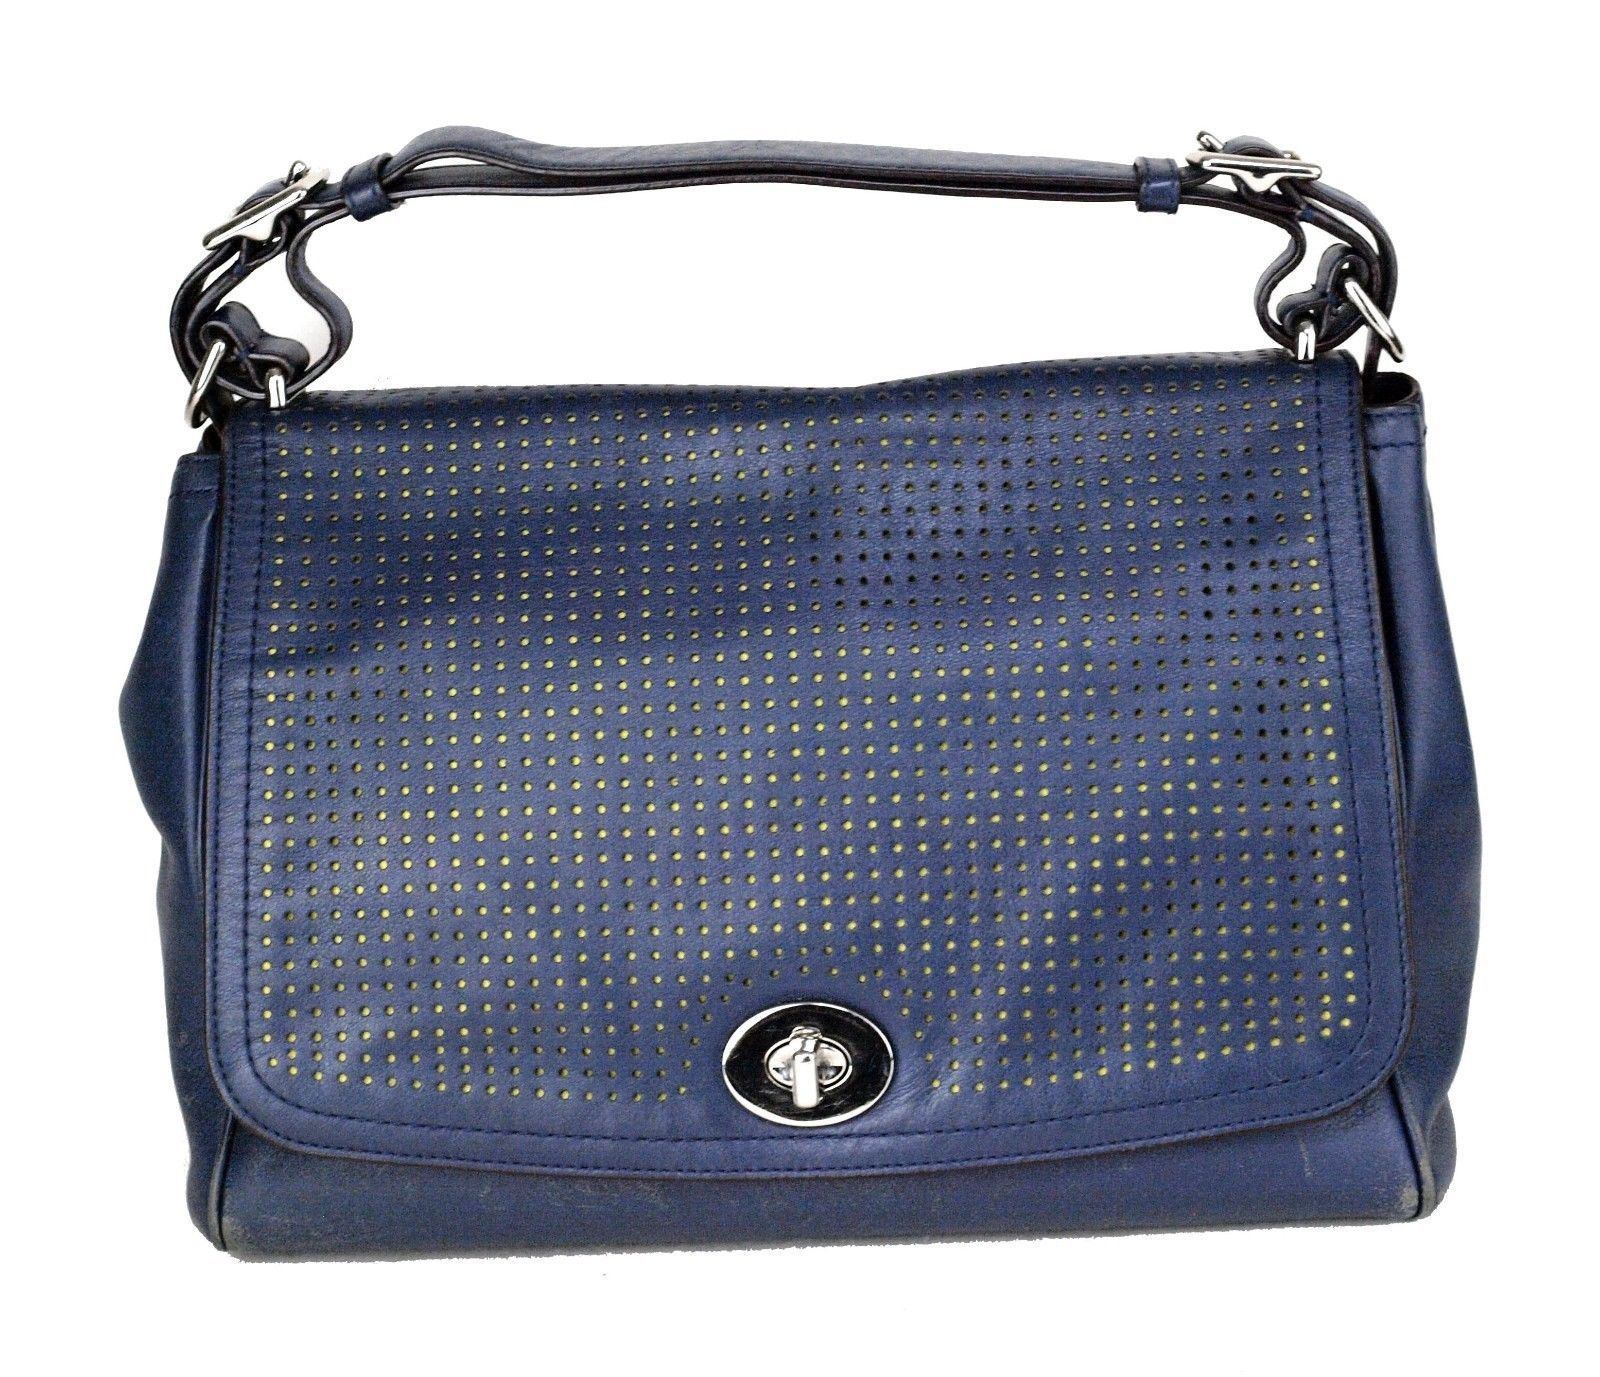 100% Authentic COACH Legacy Perforated Leather Romy Navy Hand Bag Used a958fe632698d